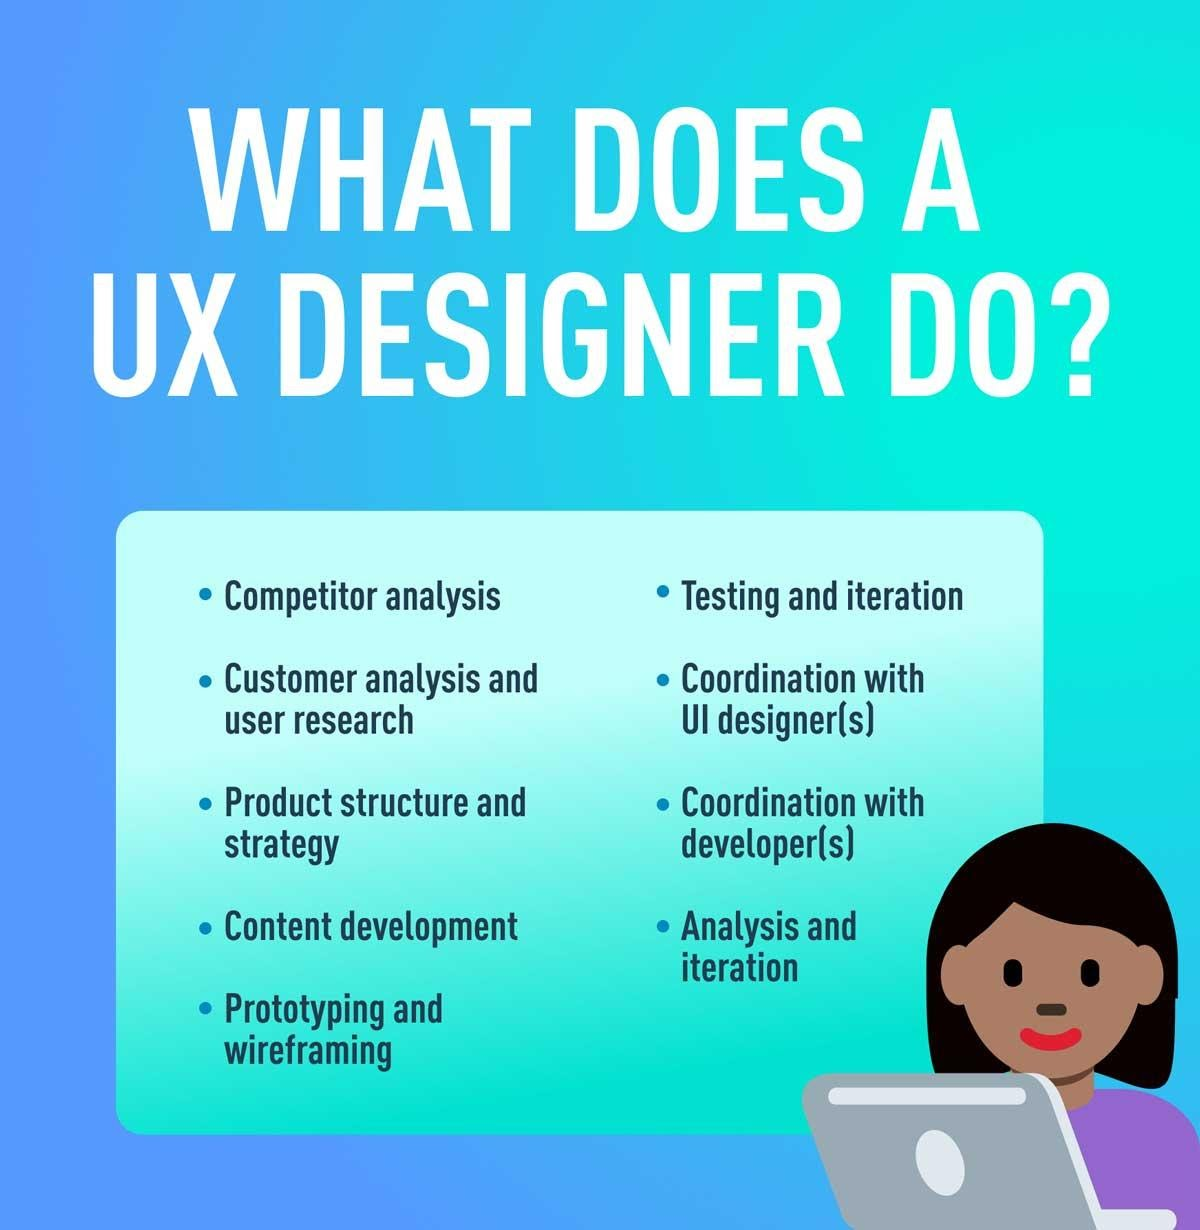 What Does A UX Designer Actually Do? [2021 Guide]